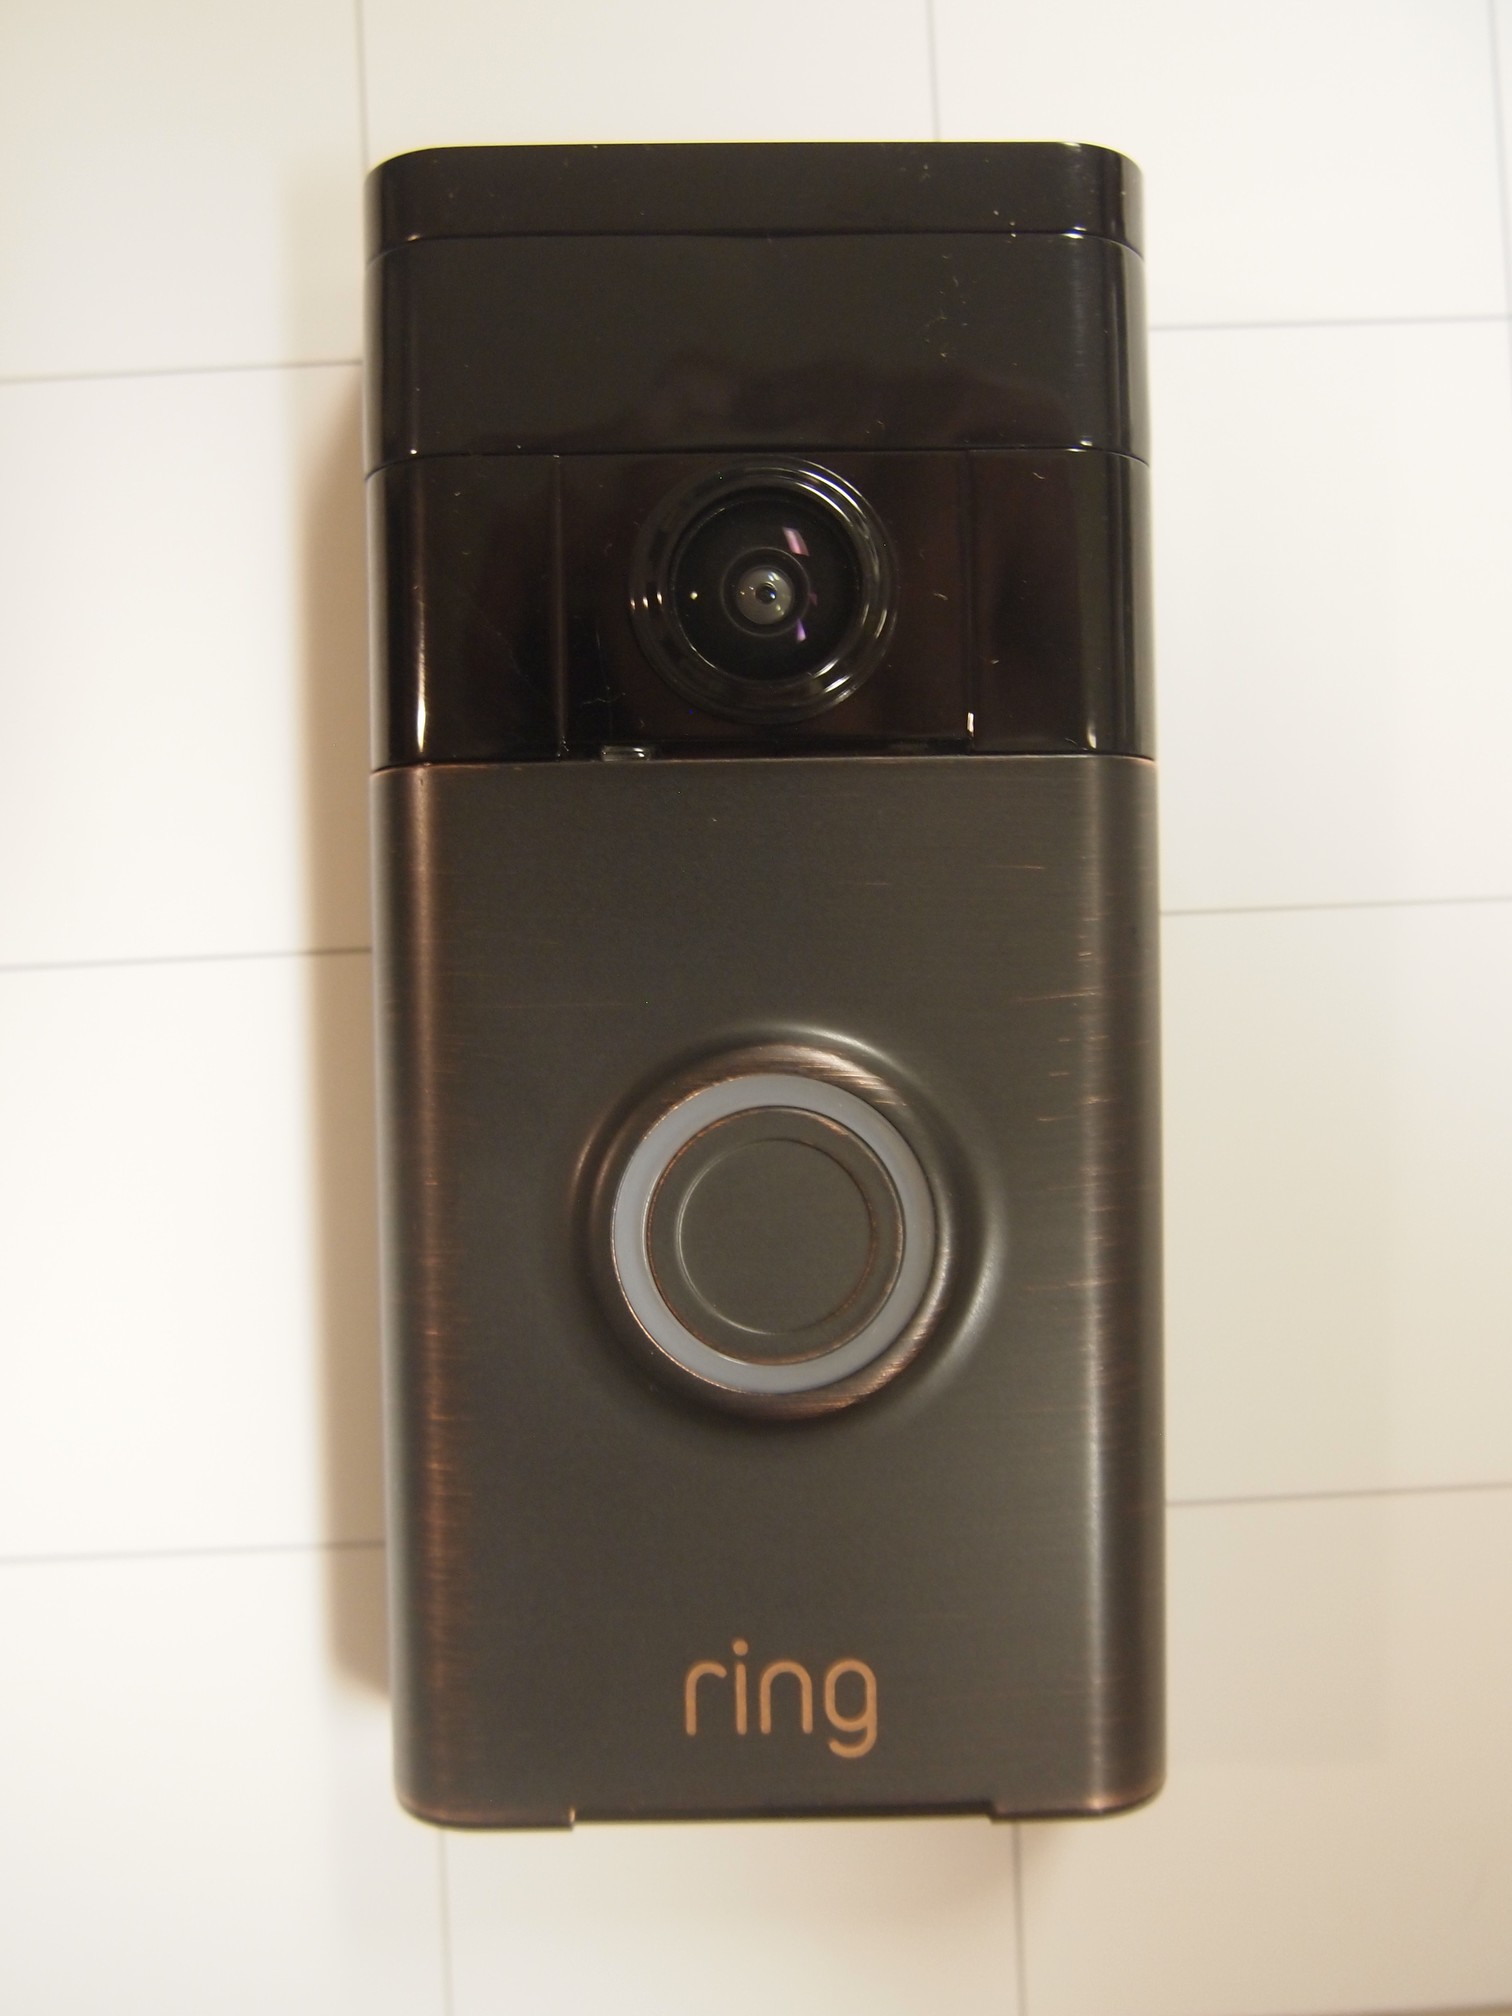 Ring-Doorbell-Teardown-1.jpeg